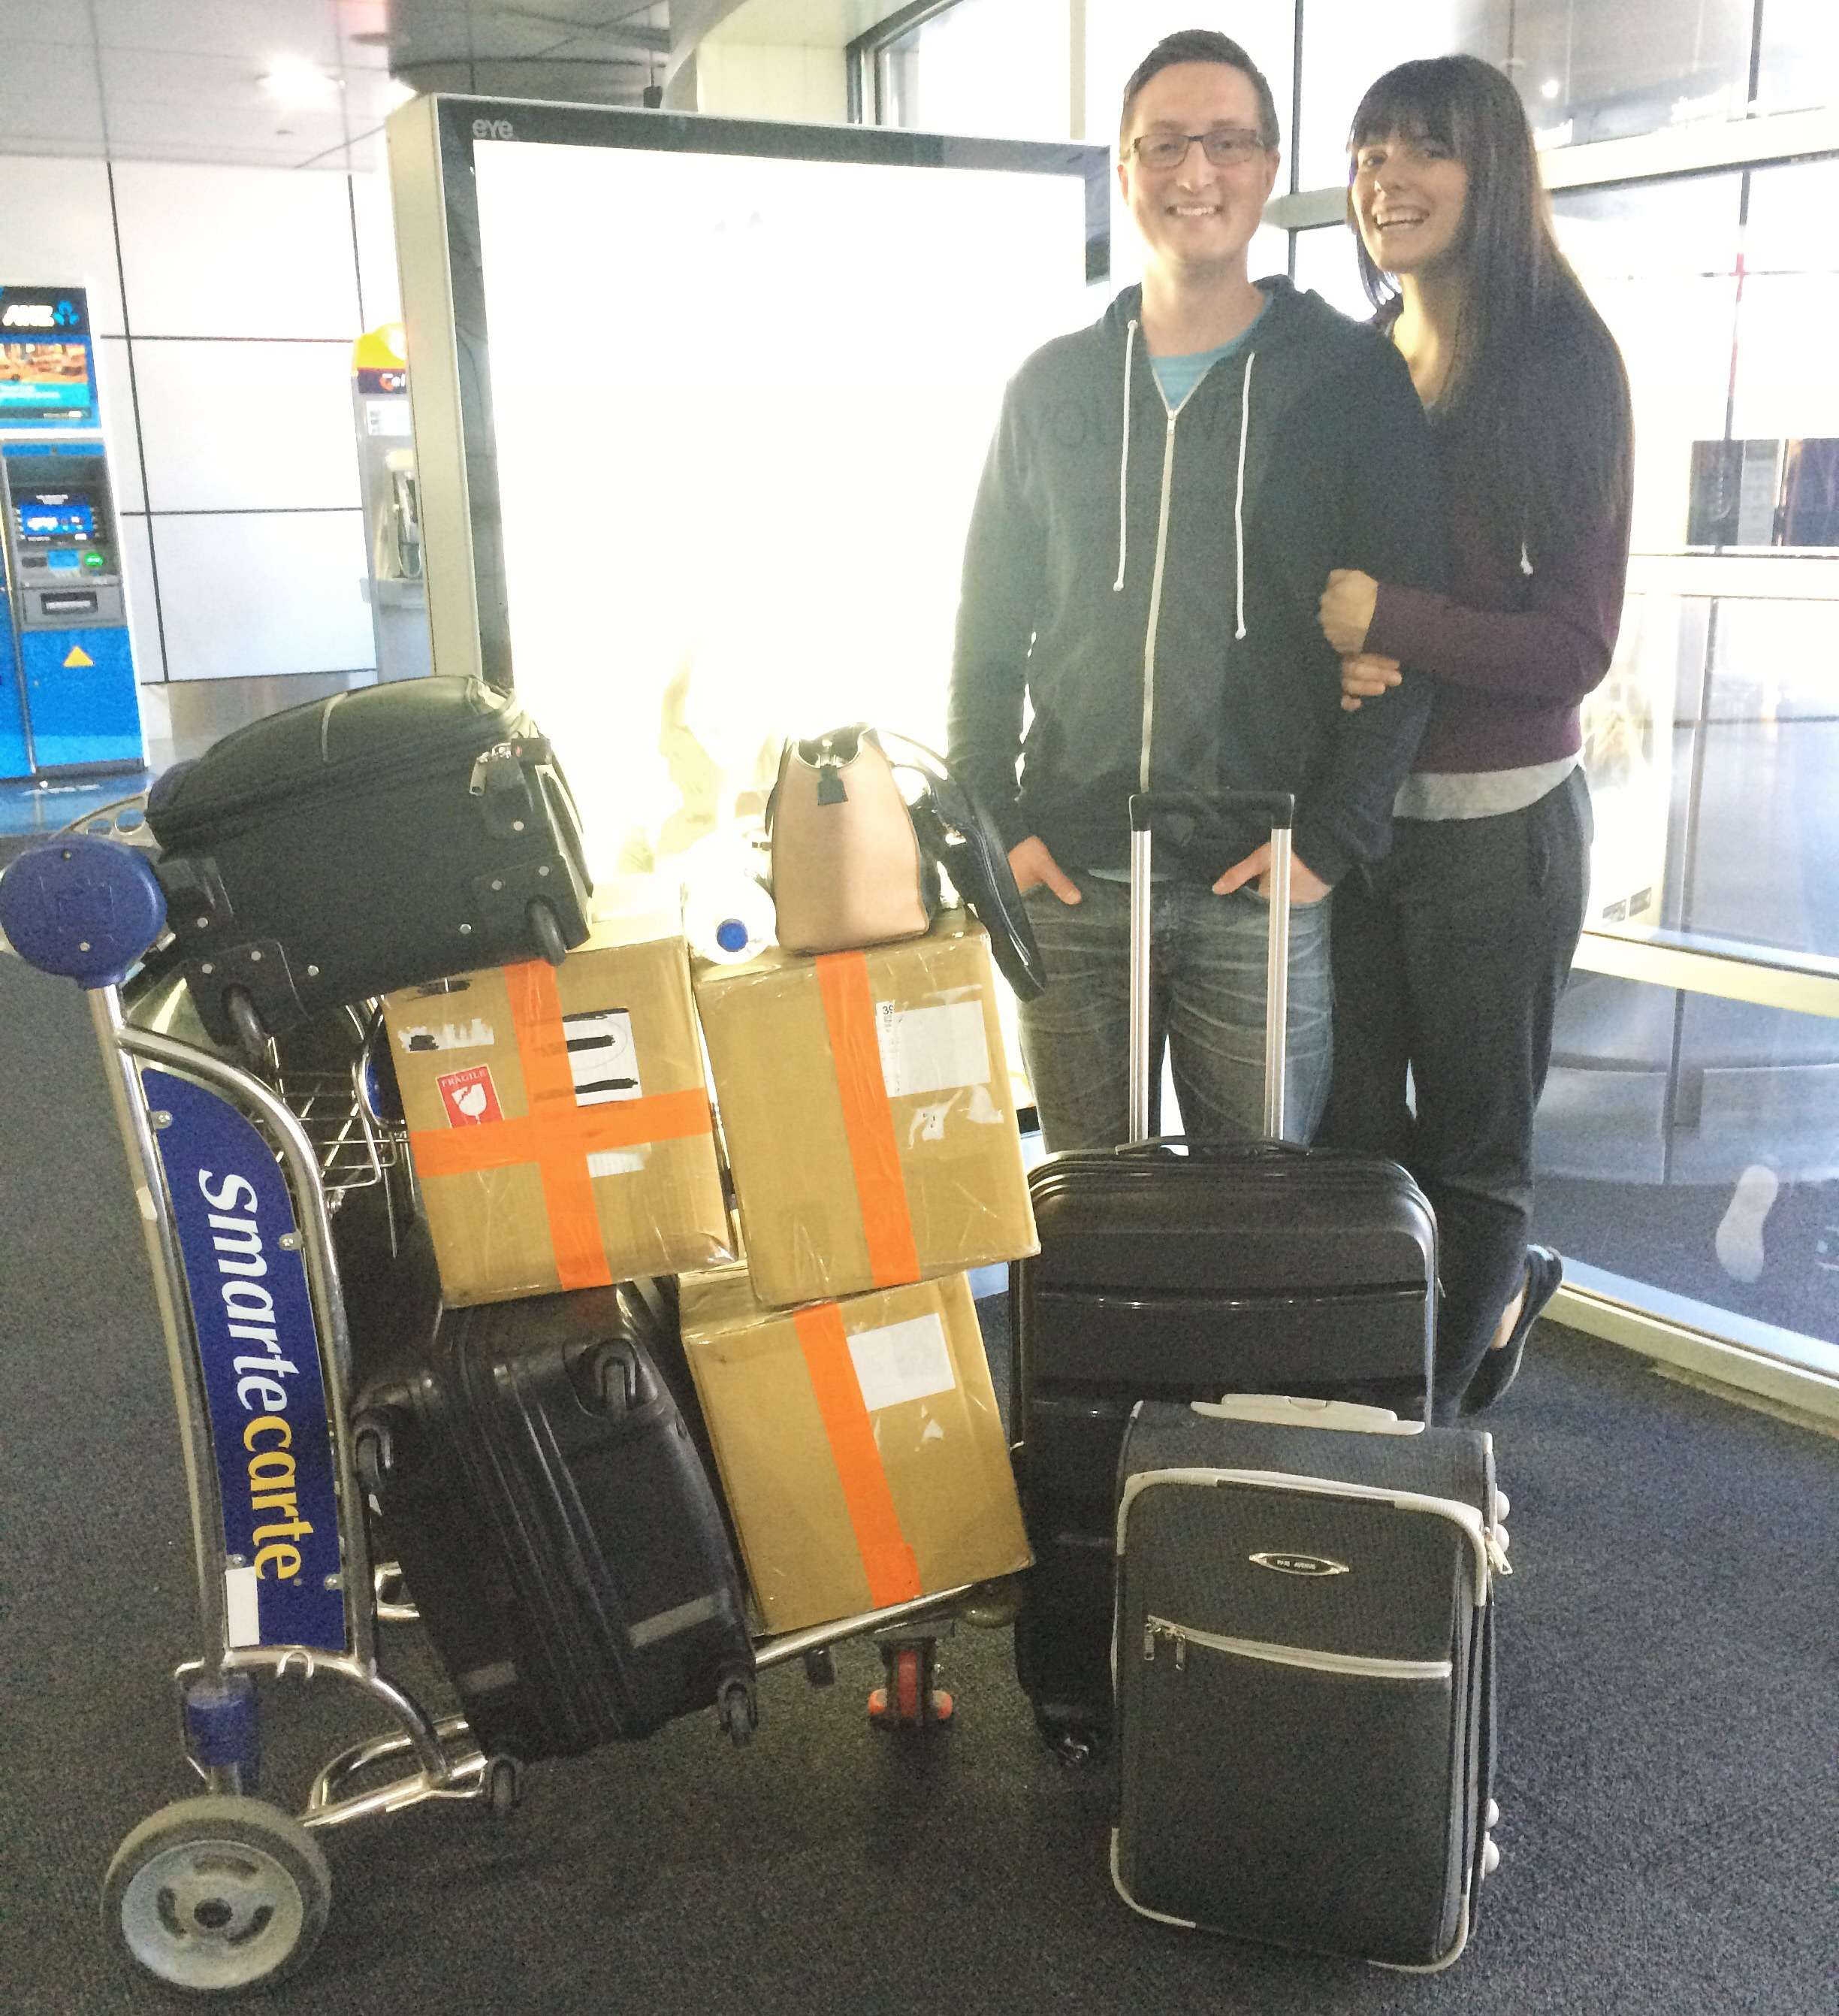 All of our gear at Melbourne International Airport.